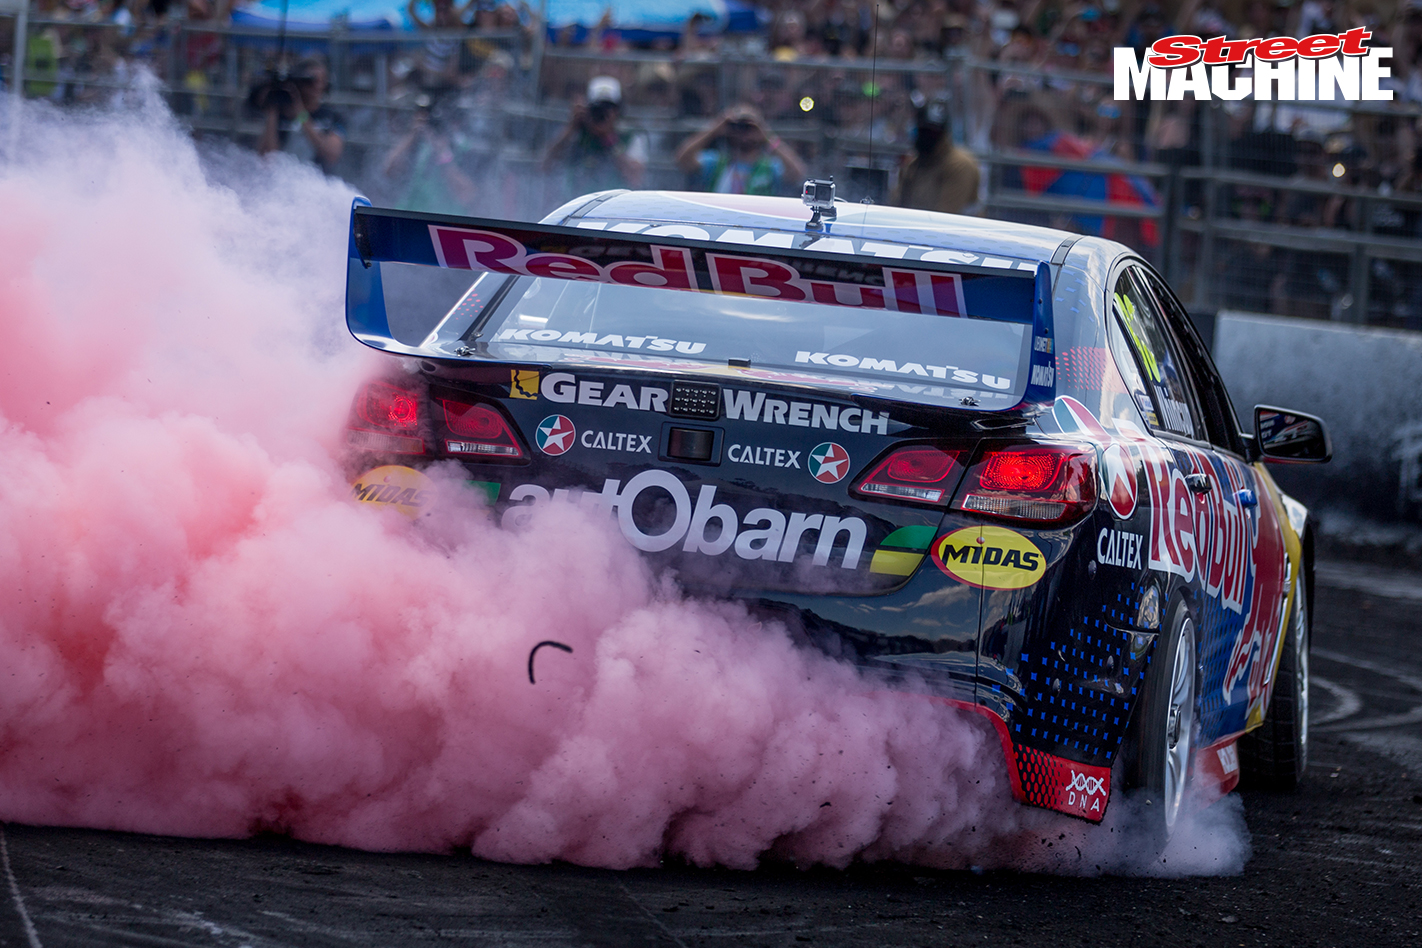 Redbull V8 Supercar Burnout 5 Nw